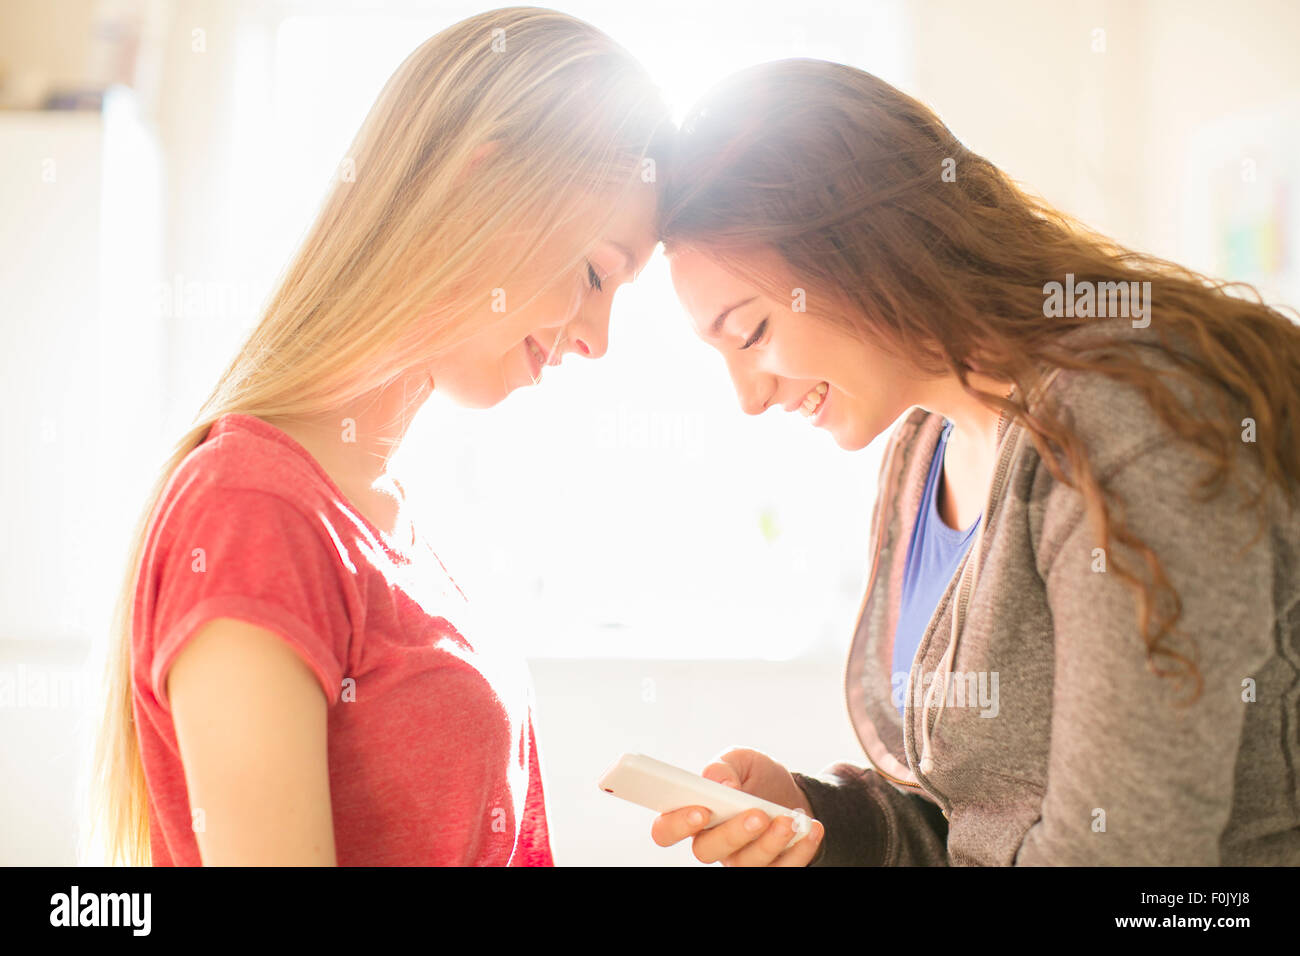 Teenage girls texting with cell phone head to head - Stock Image